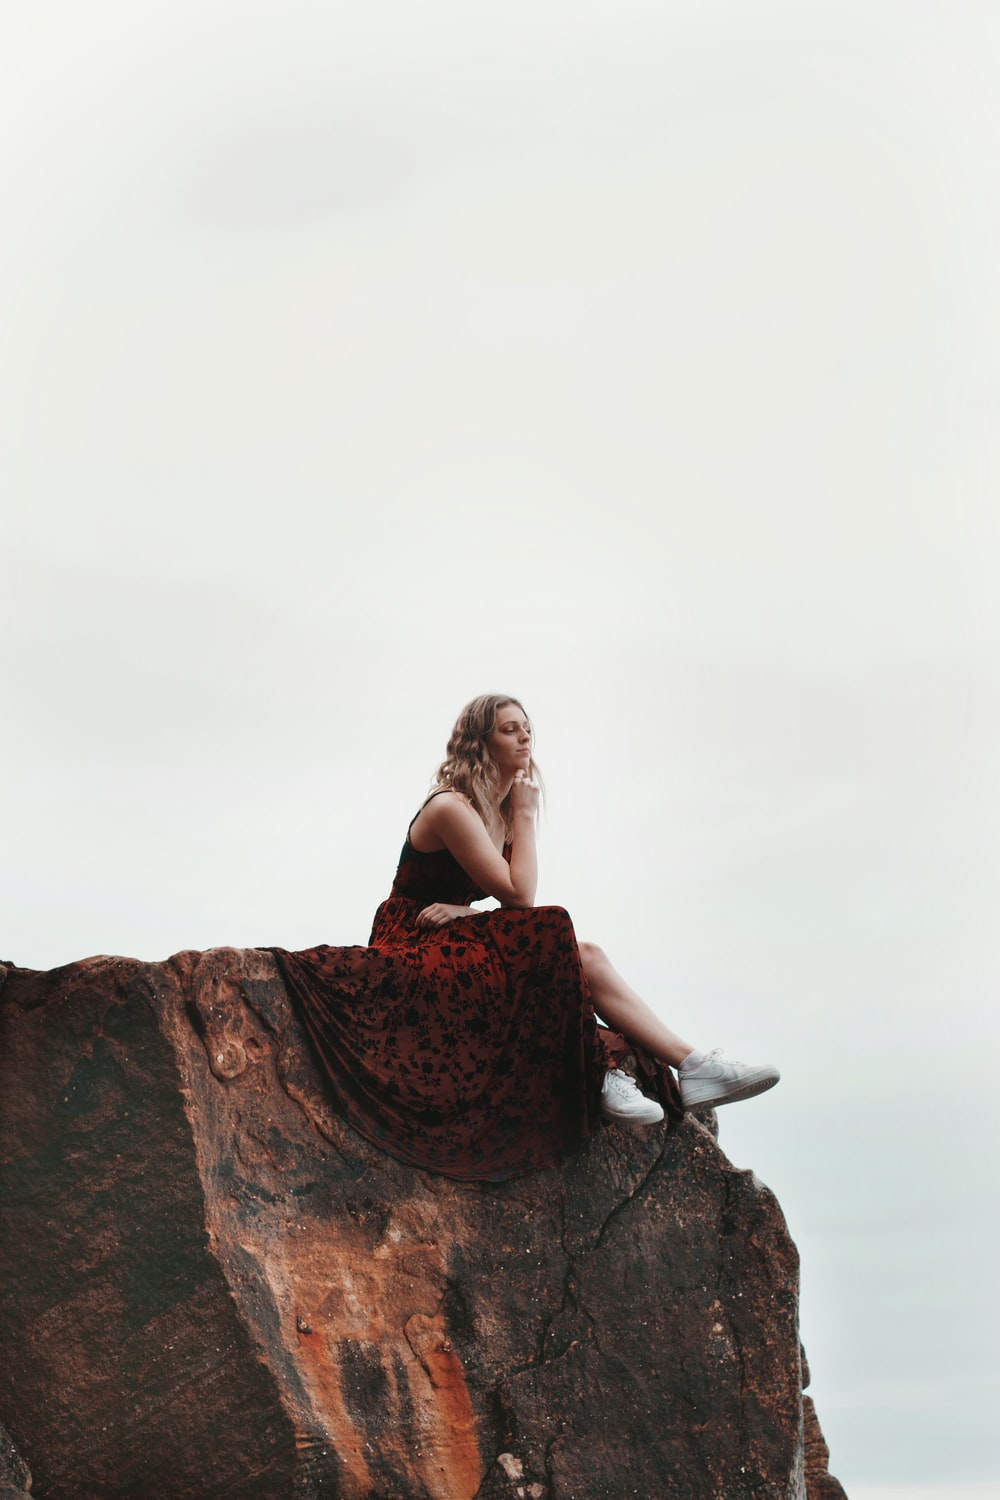 woman in black and red floral dress sitting on rock